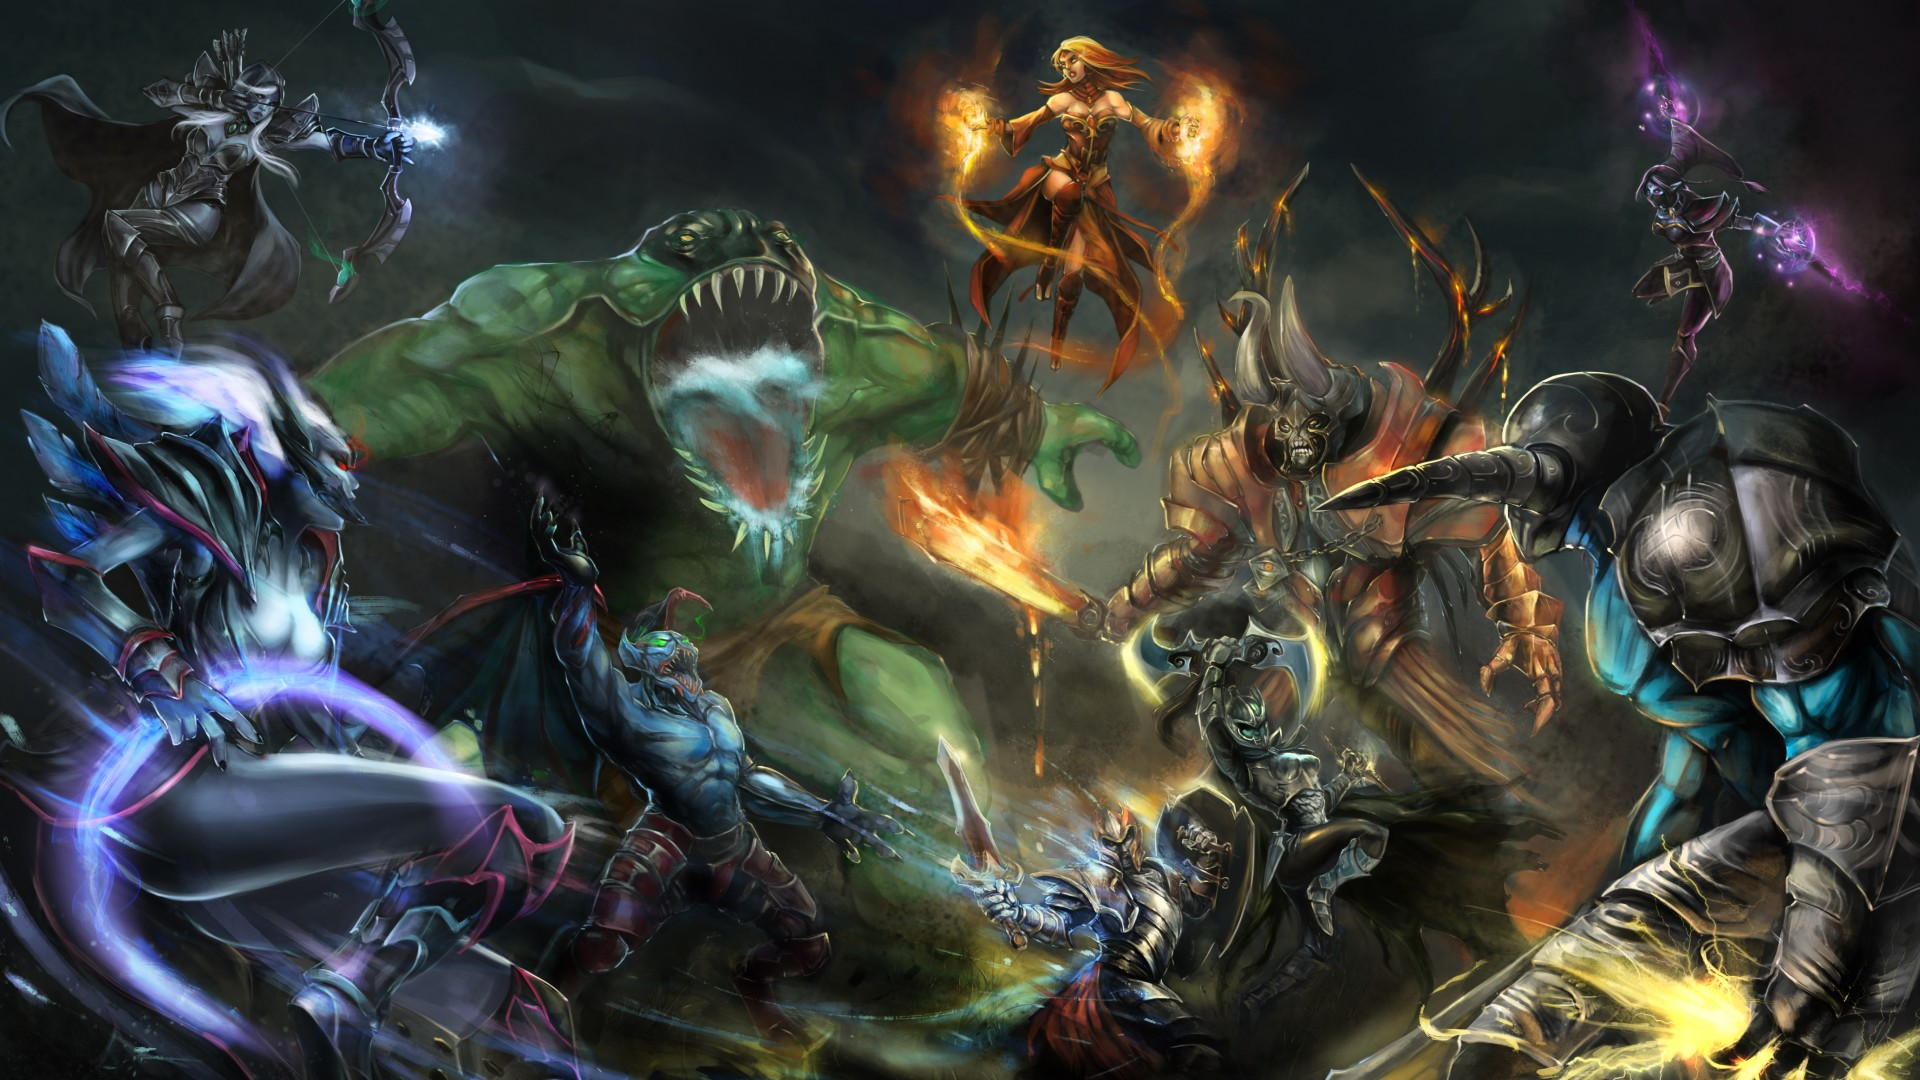 Dota 2, game, characters, hero, monster, fantasy, art, fire, ice, Magic, Lightning, battle, fan art, ShadowFiend, Faceless Void, Sven, Lina, Tiny, Razor, Viper, TideHunter, Crystal Maiden, Juggernaut (horizontal)